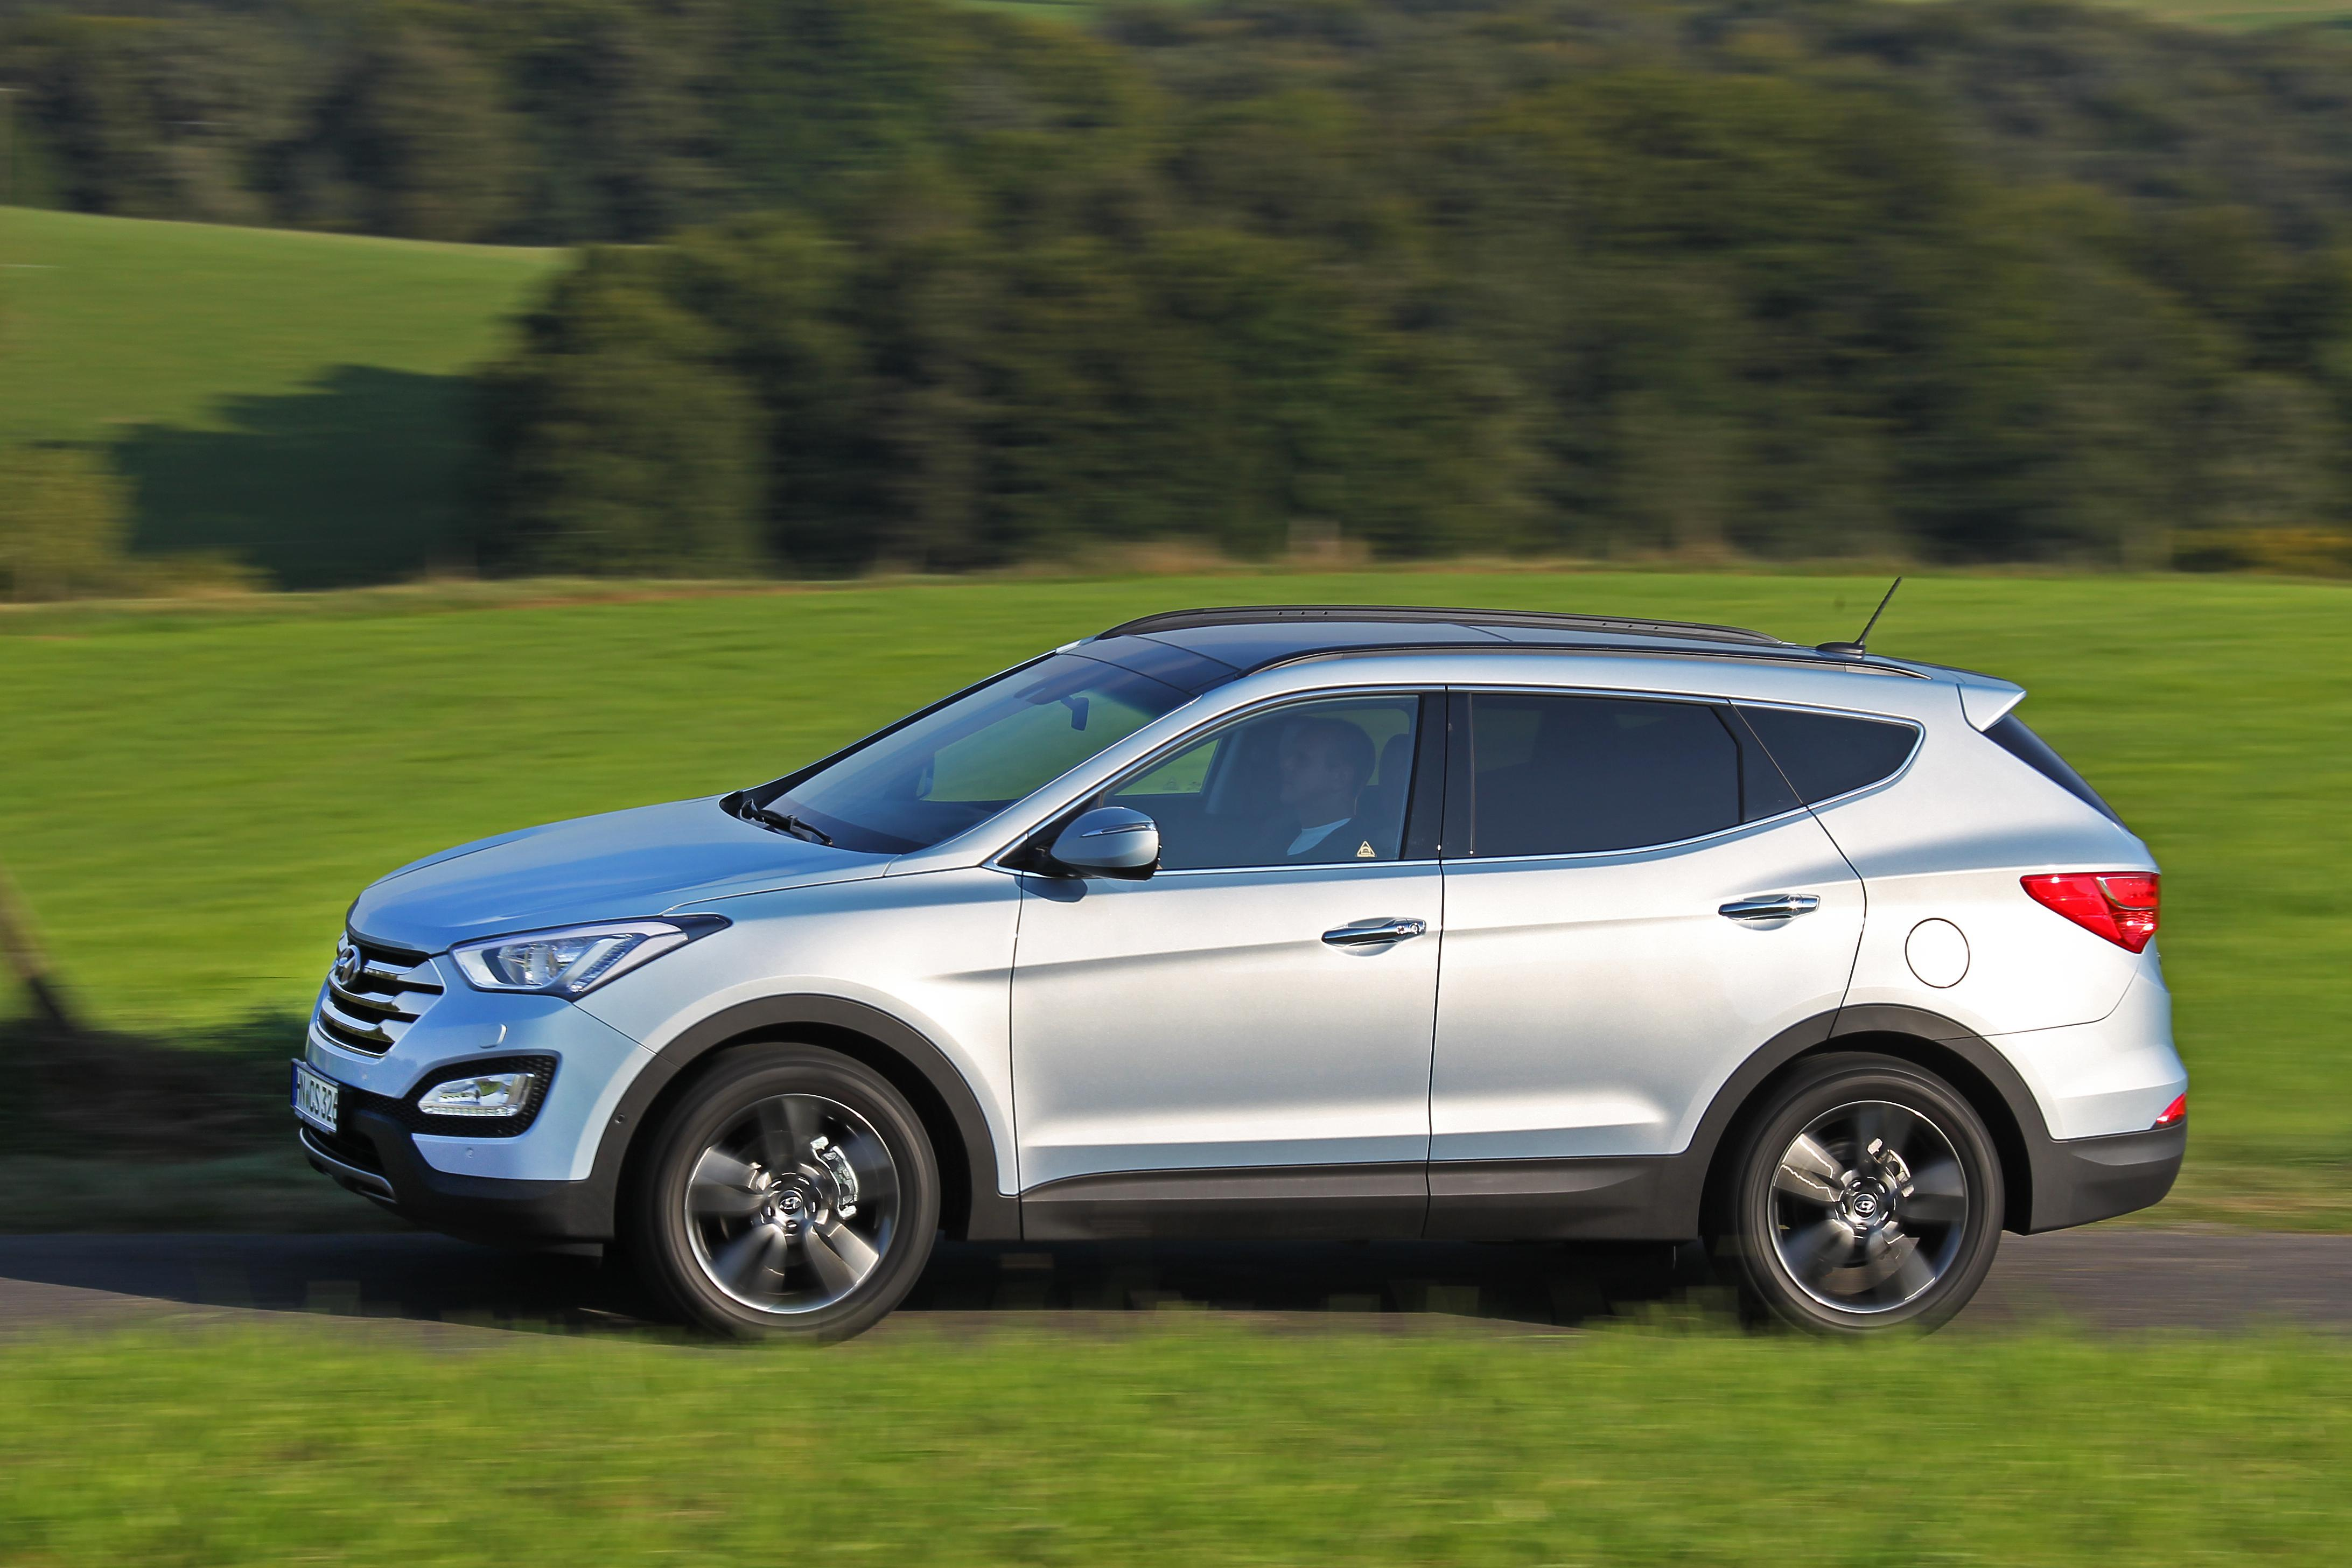 New Generation Santa Fe 1re Hyundai Motor Company